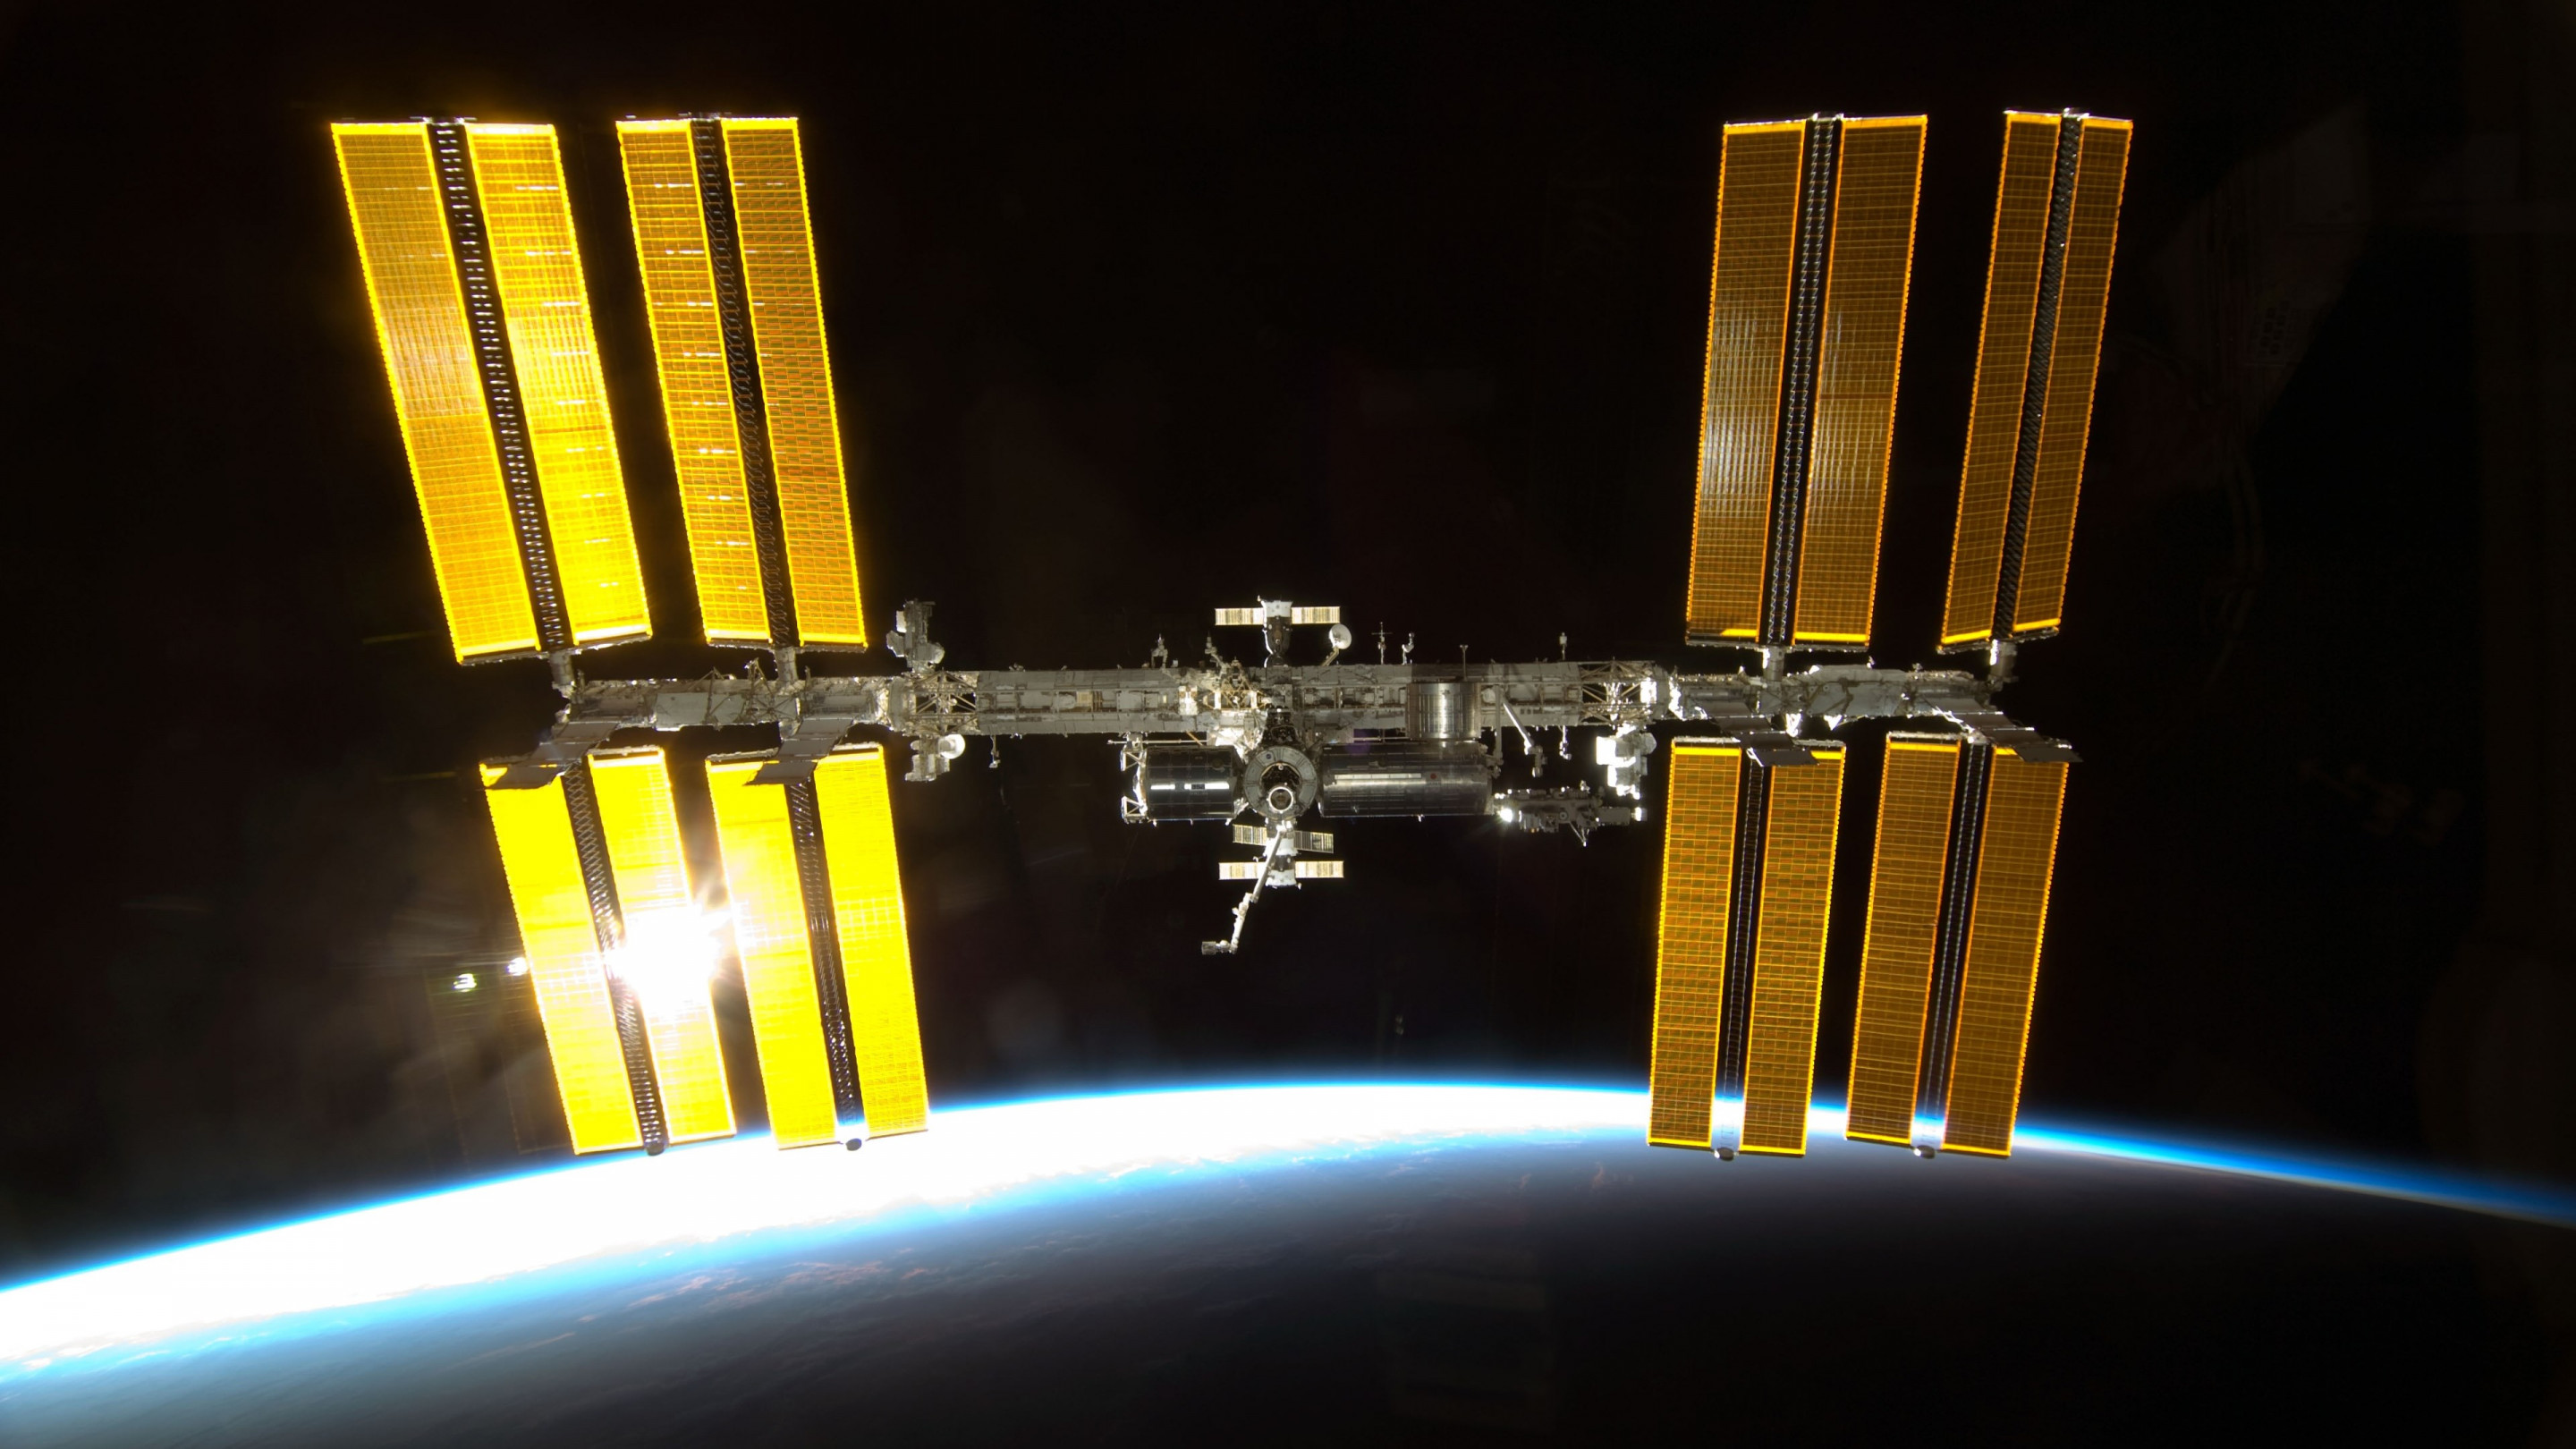 International Space Station wallpaper 2880x1620